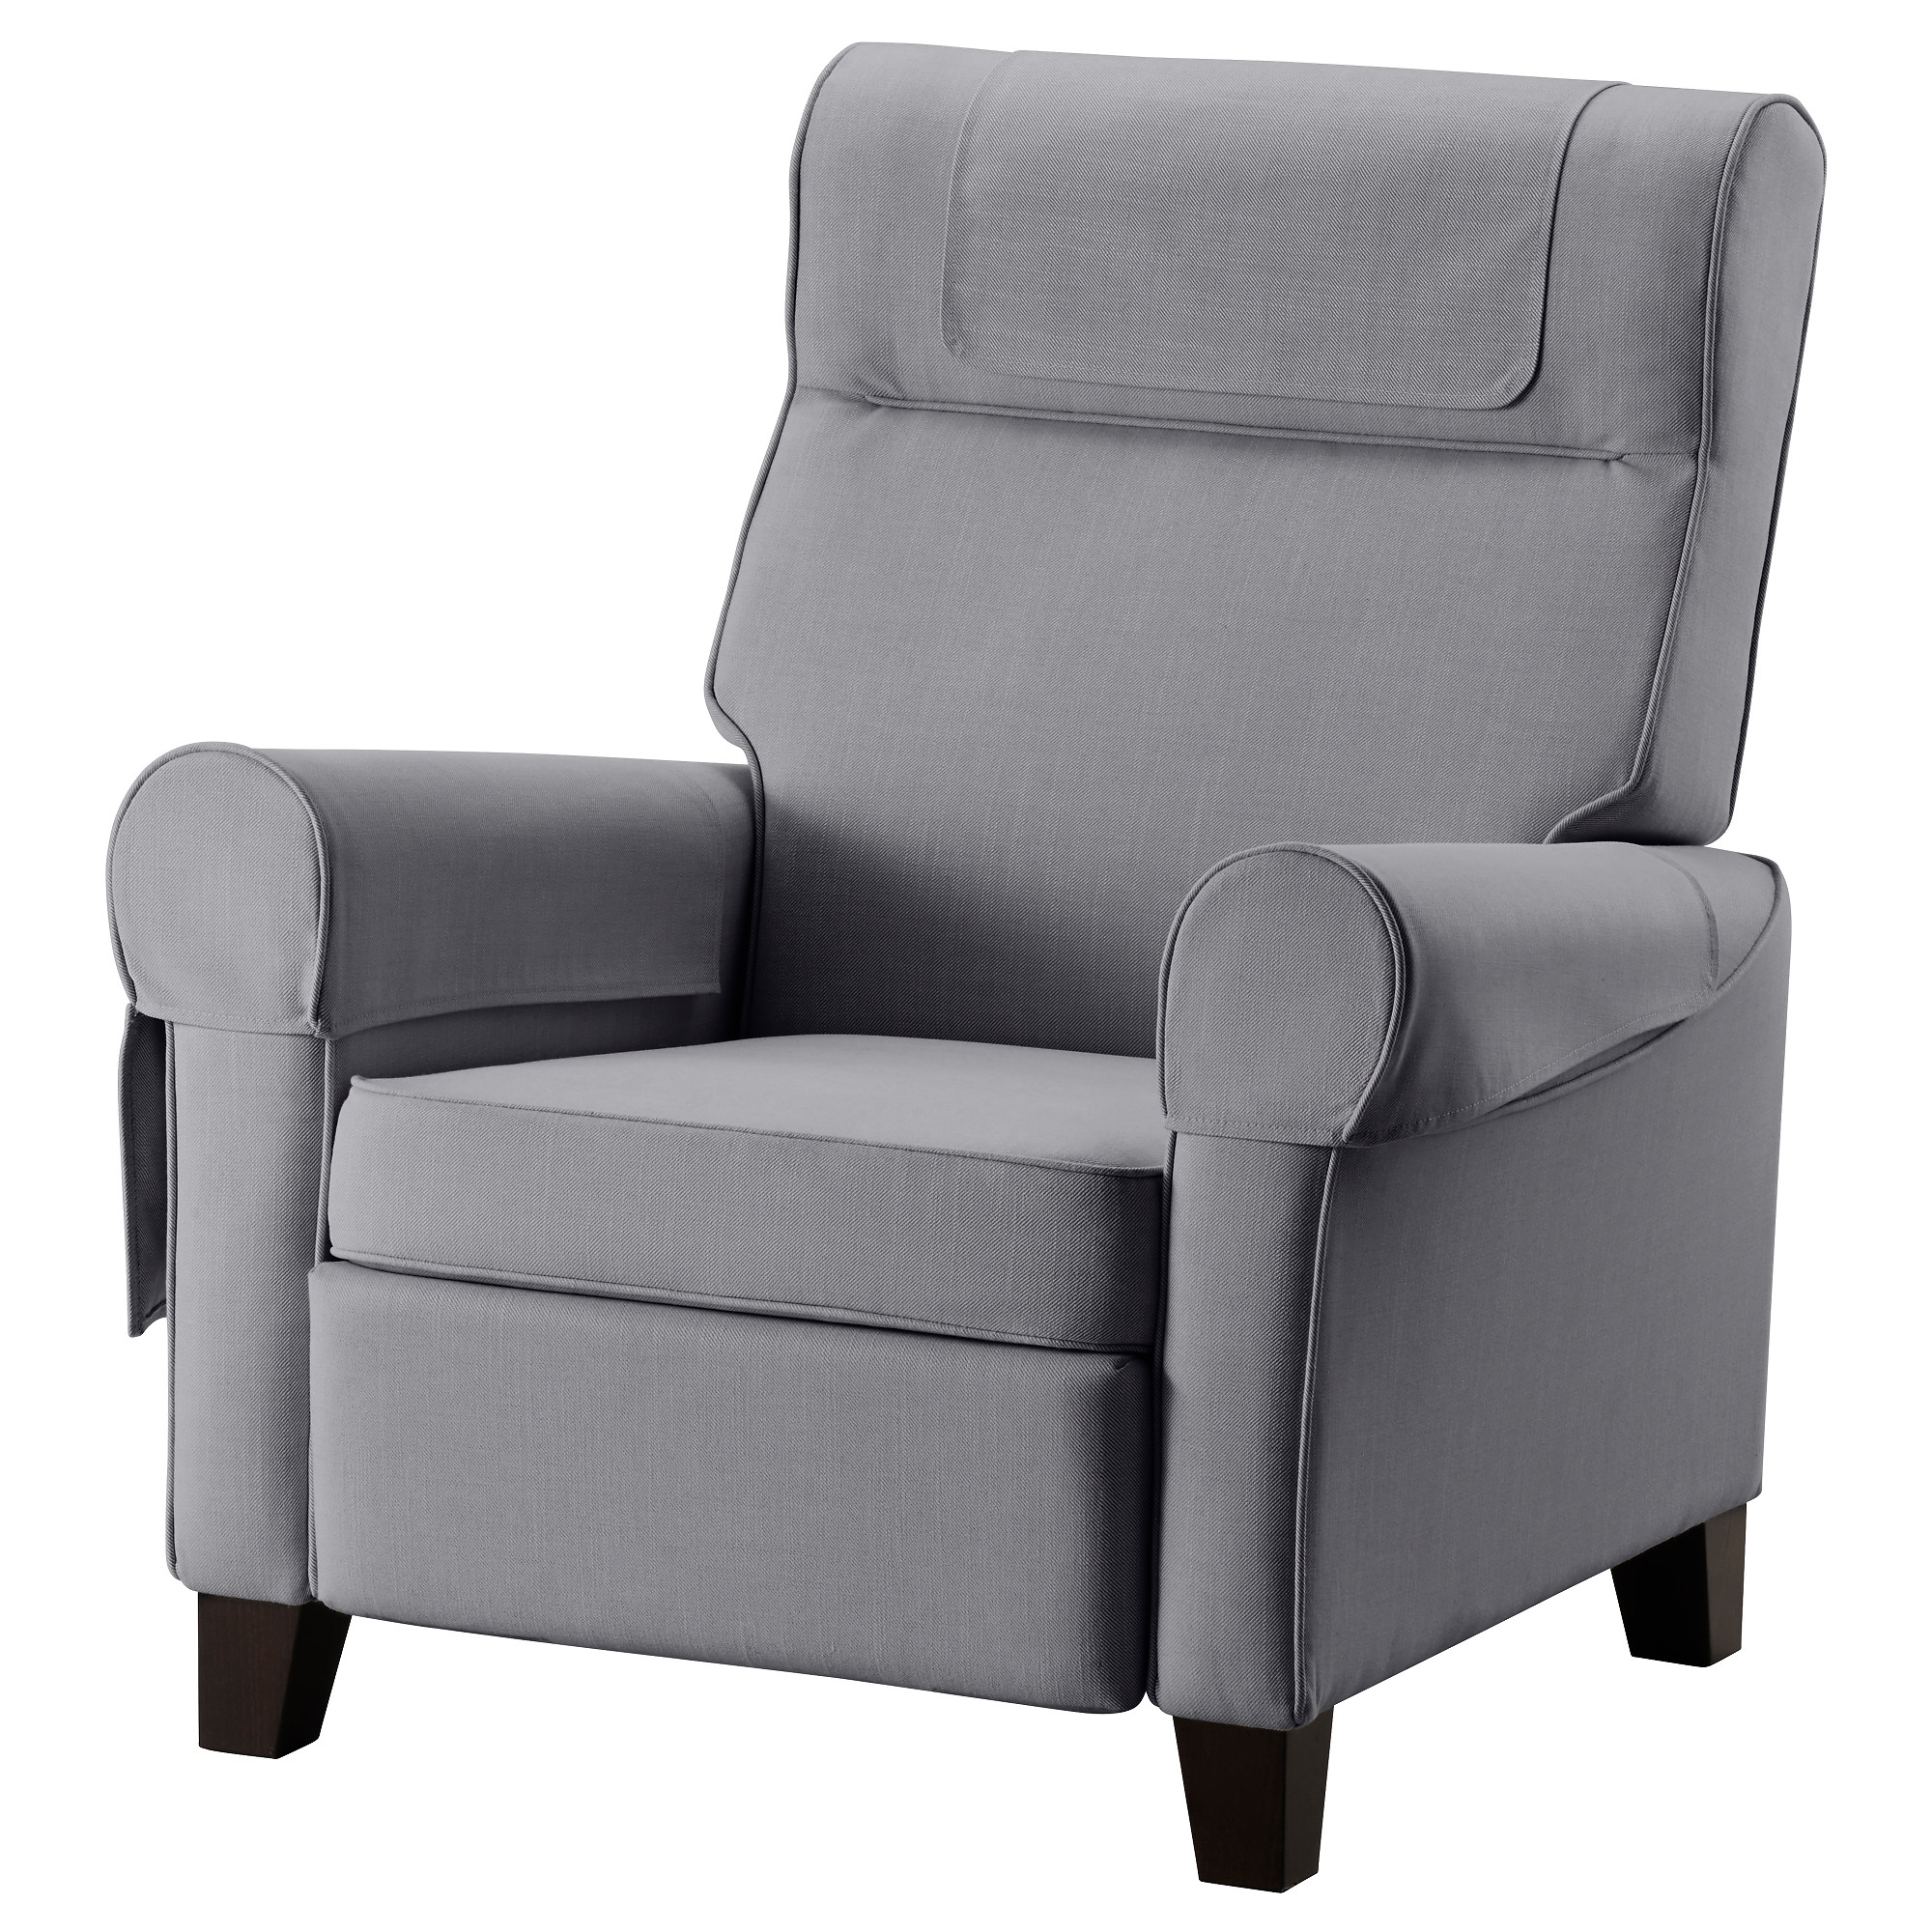 kimstad ikea recliner your white regarding furniture timsfors redoubtable off home recliners swivel design mjuk